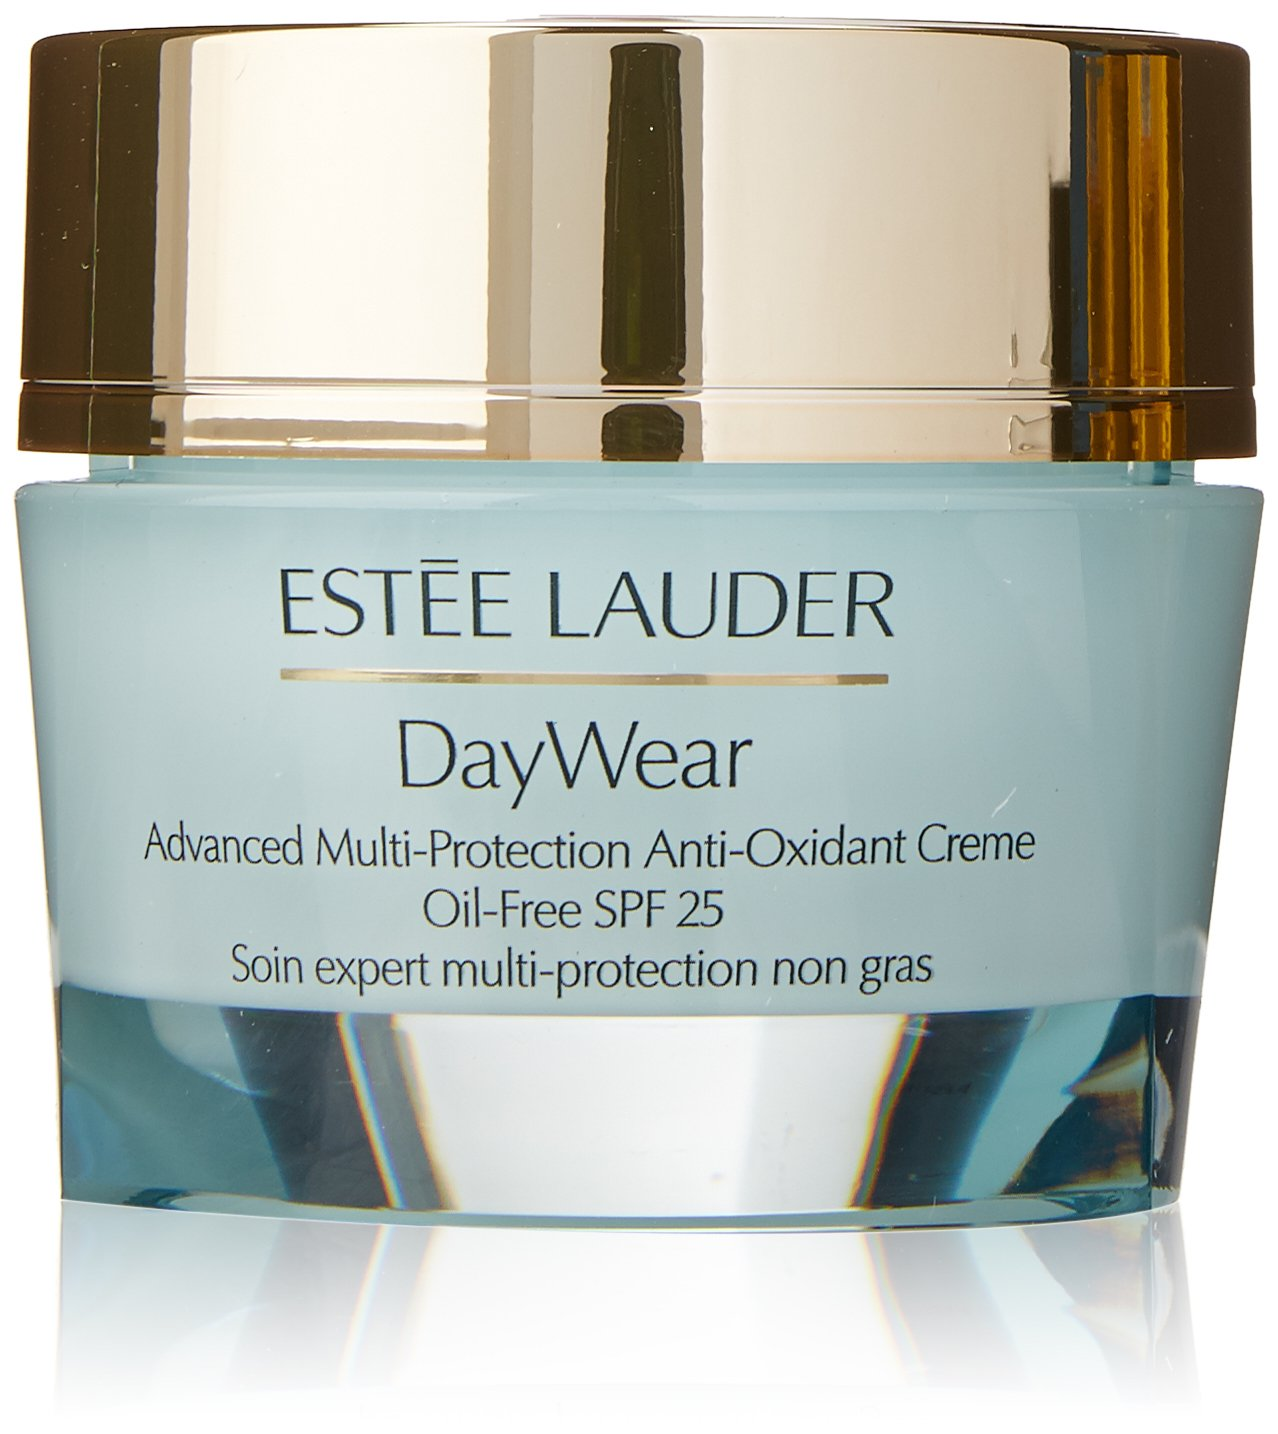 Estee Lauder Daywear Advanced Multi Protection Anti Oxidant Creme All Skin Types for Unisex, 1.7 Ounce